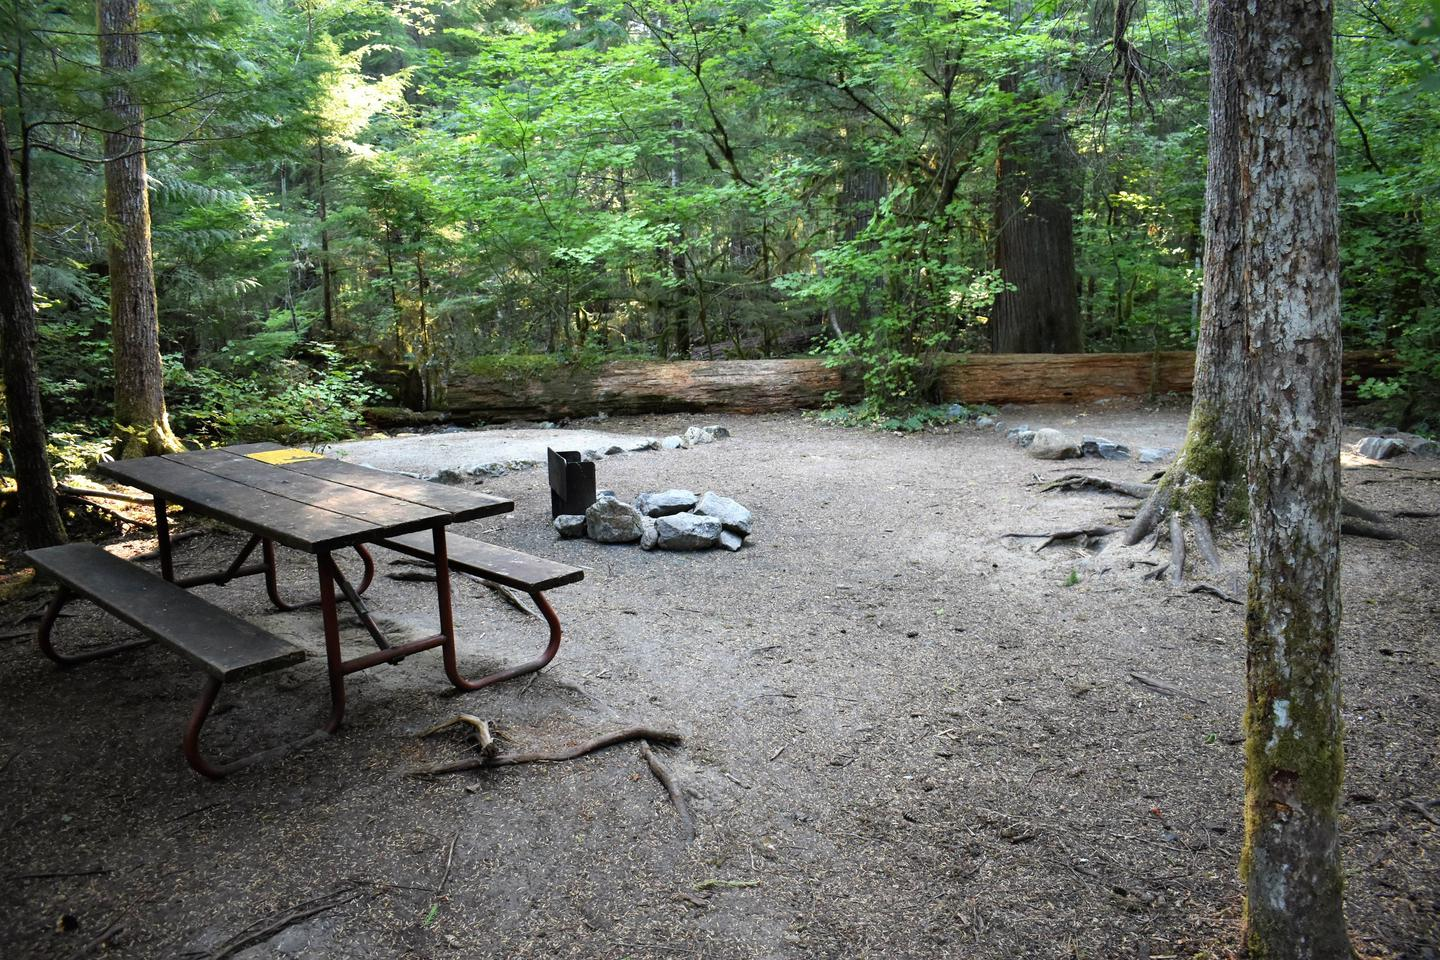 Picnic table, fire ring, and tent padsView of campsite